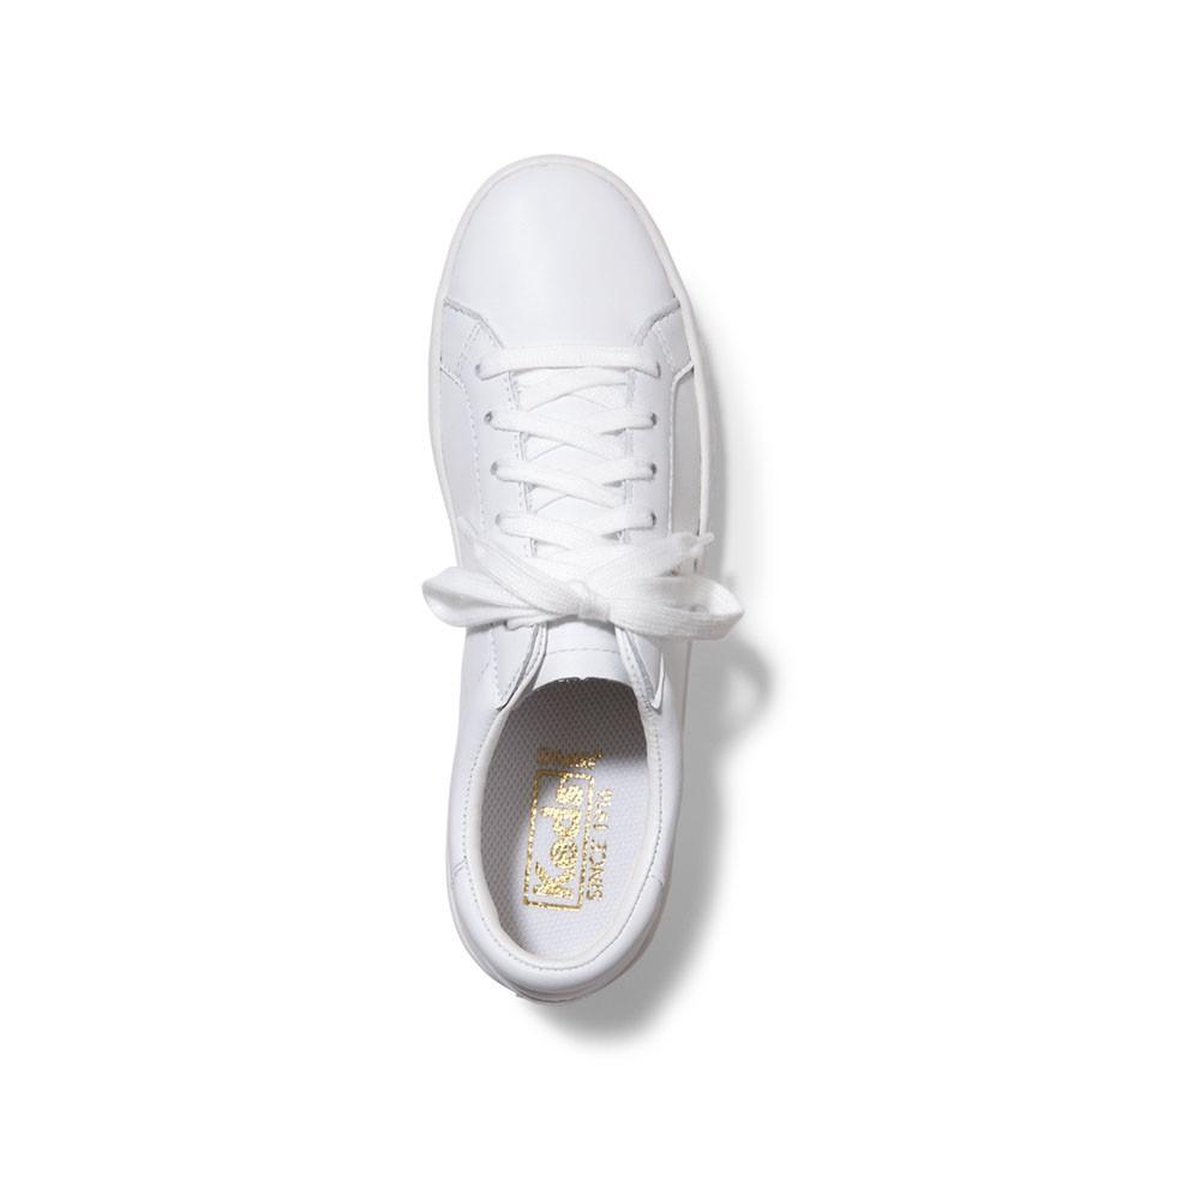 Ace Leather White Sneakers